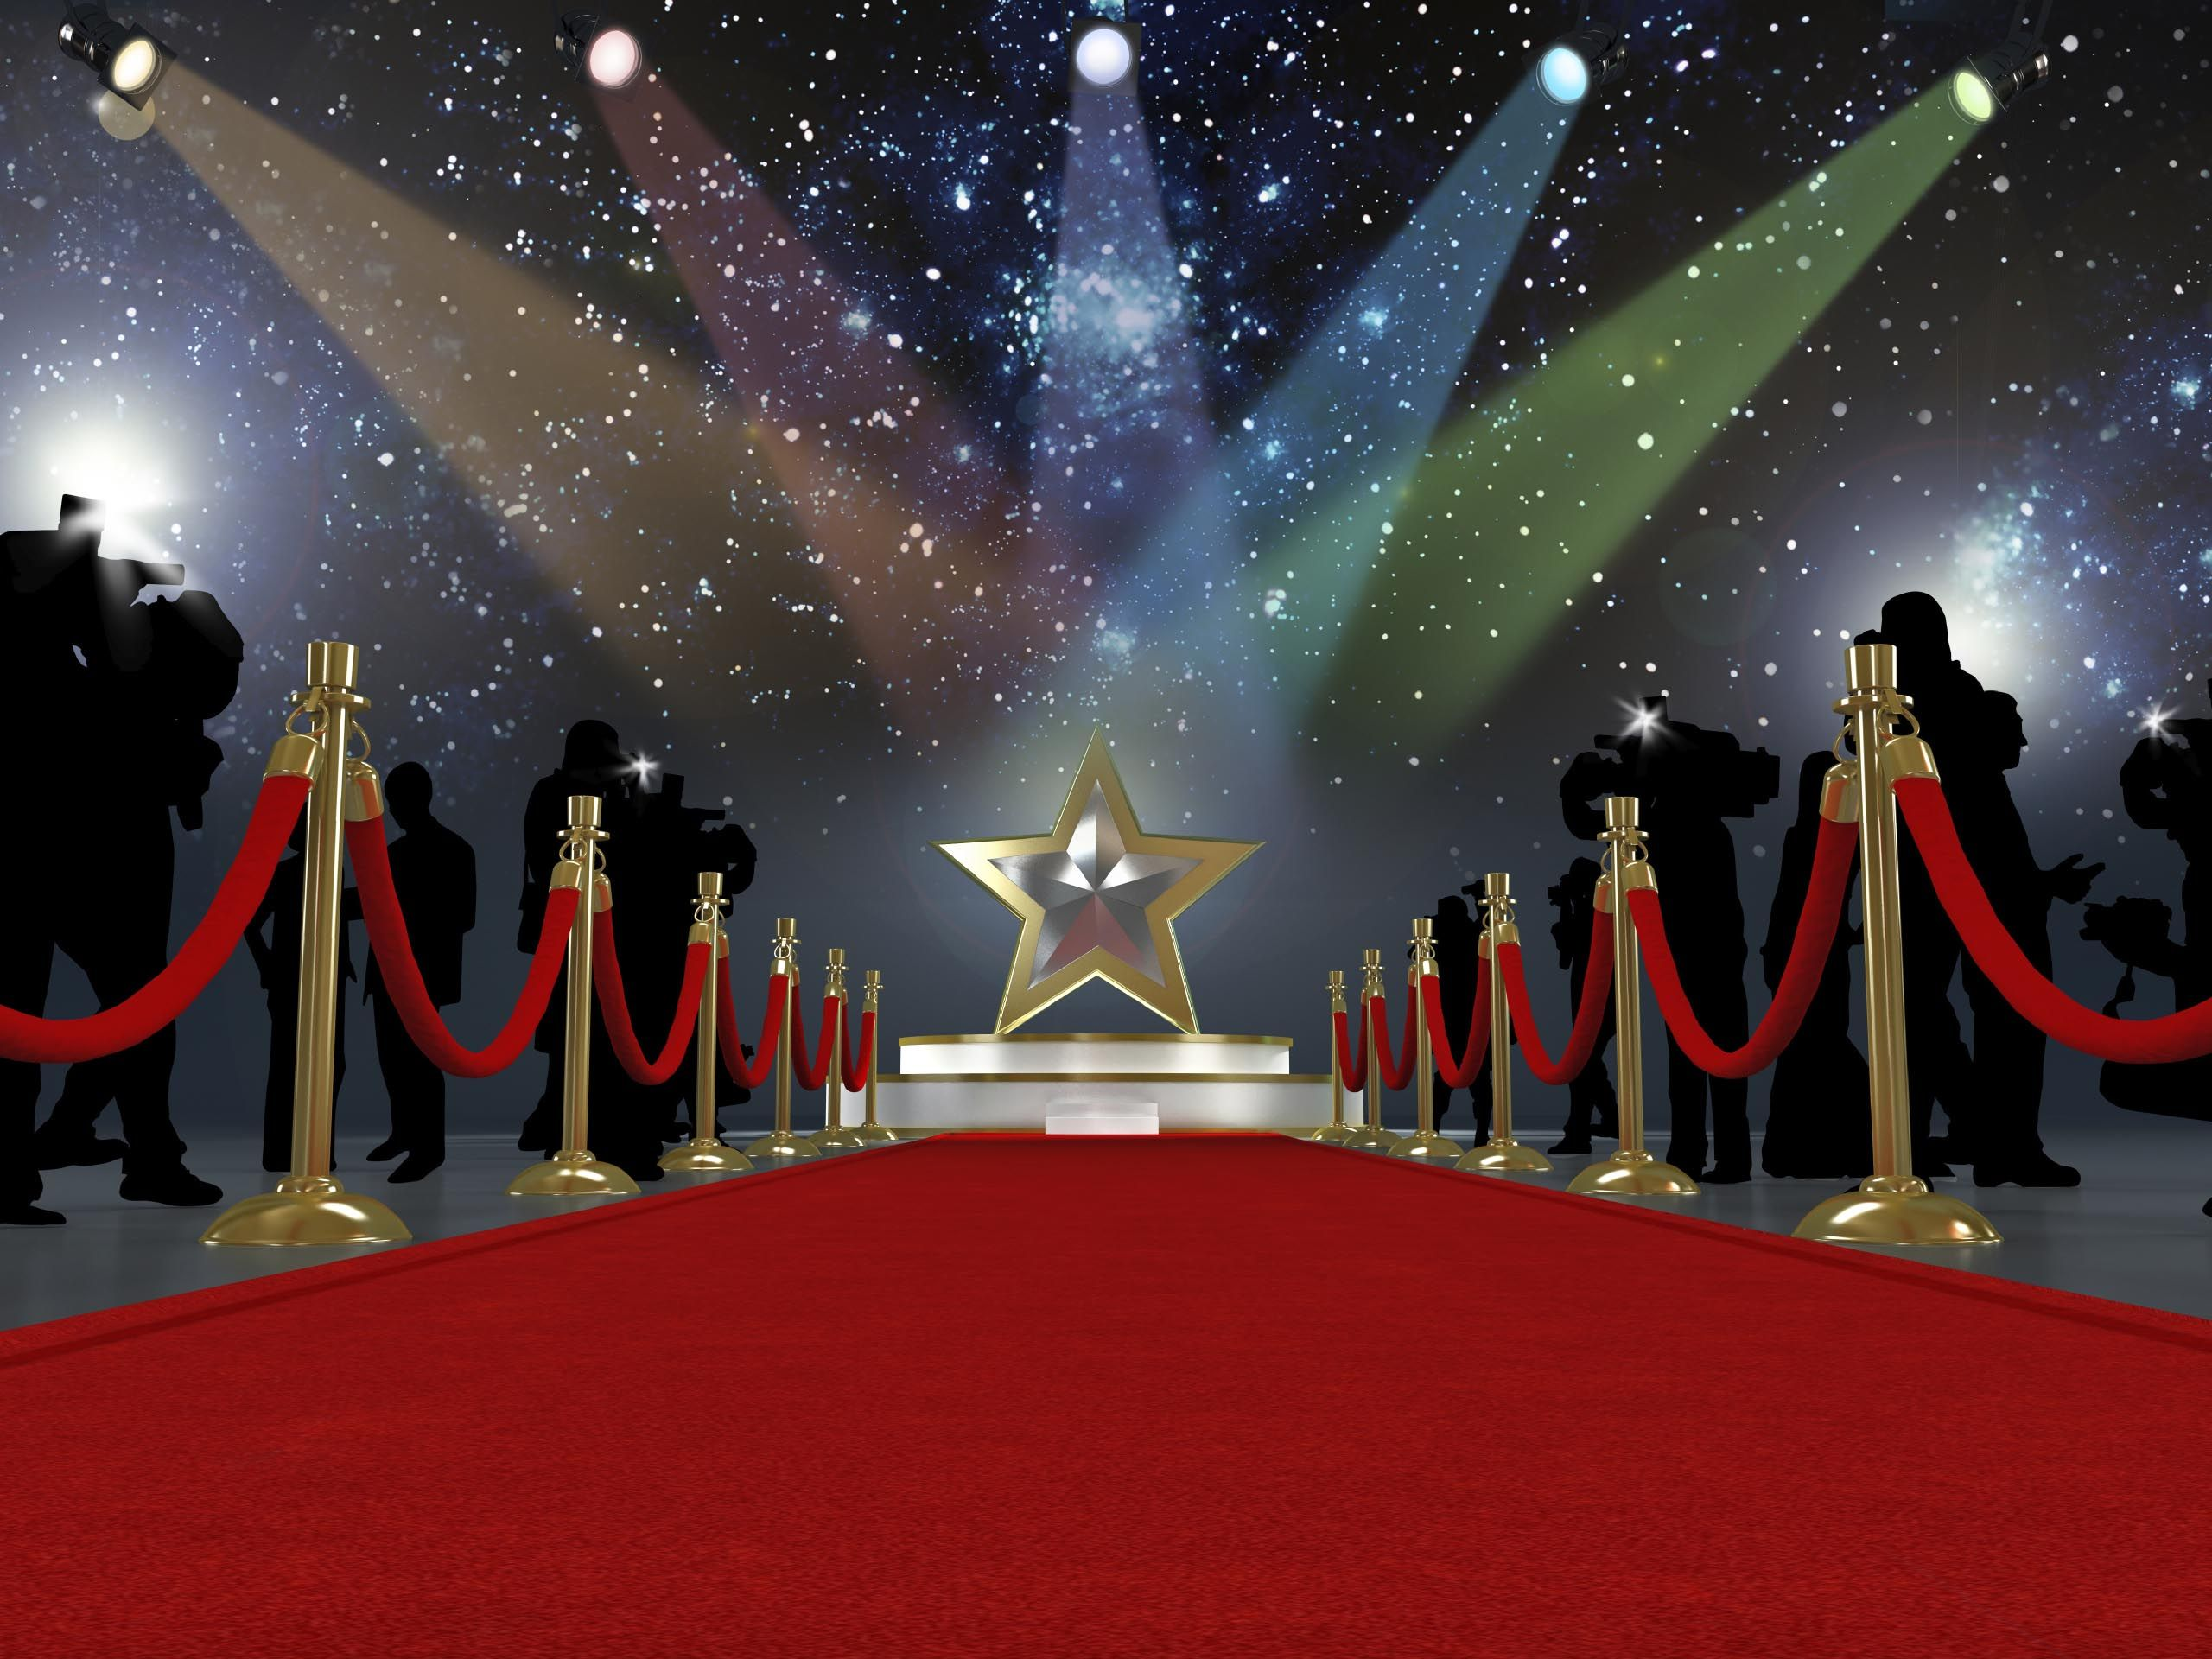 Hollywood Backdrop party Photography Oscars party banner red carpet 5ft x 7ft Printed